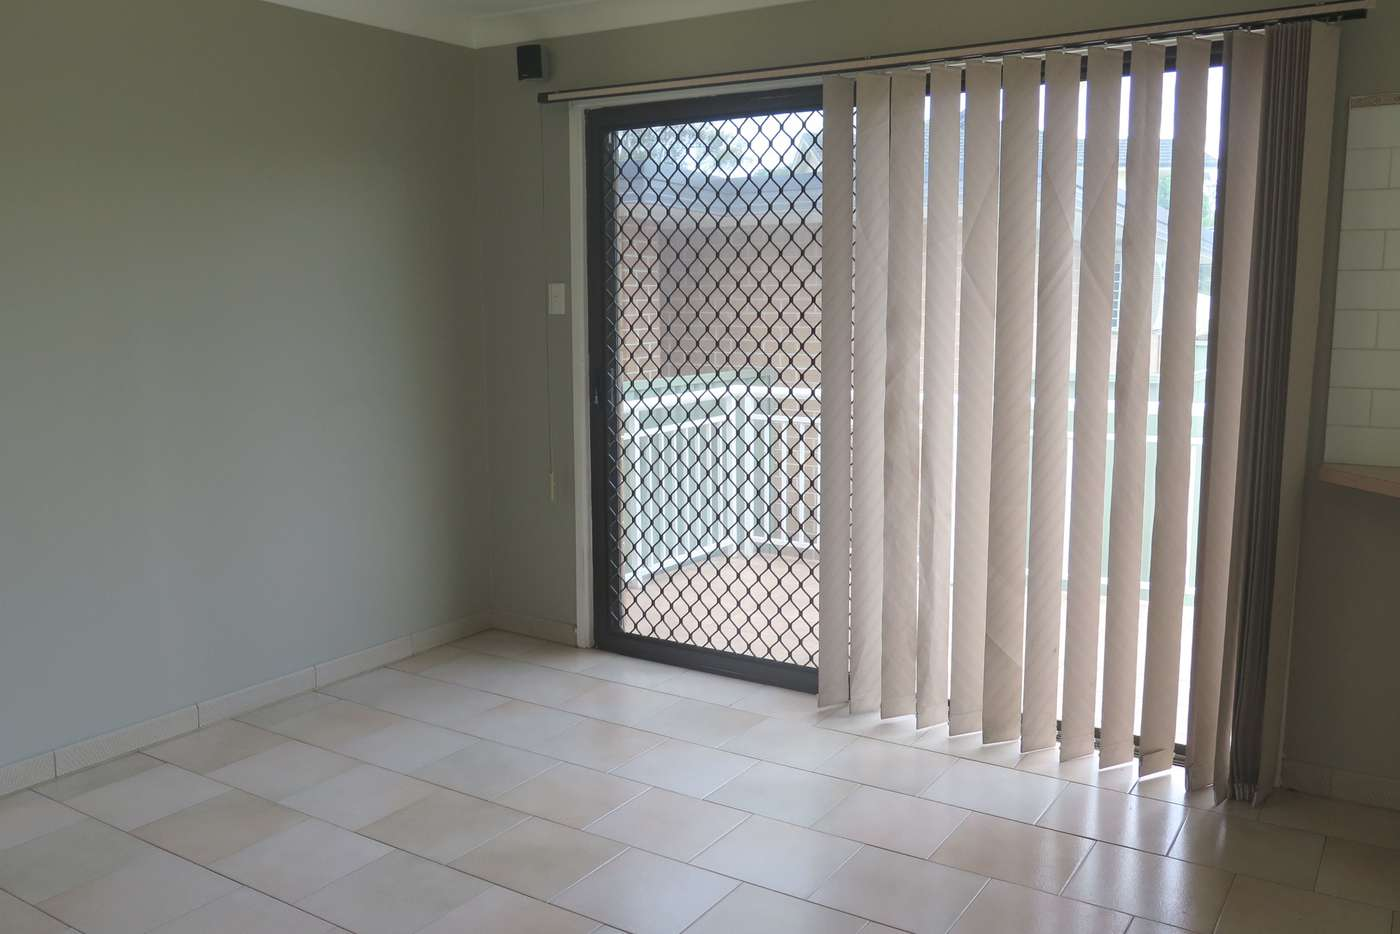 Sixth view of Homely house listing, 20 Benaud Court, St Clair NSW 2759